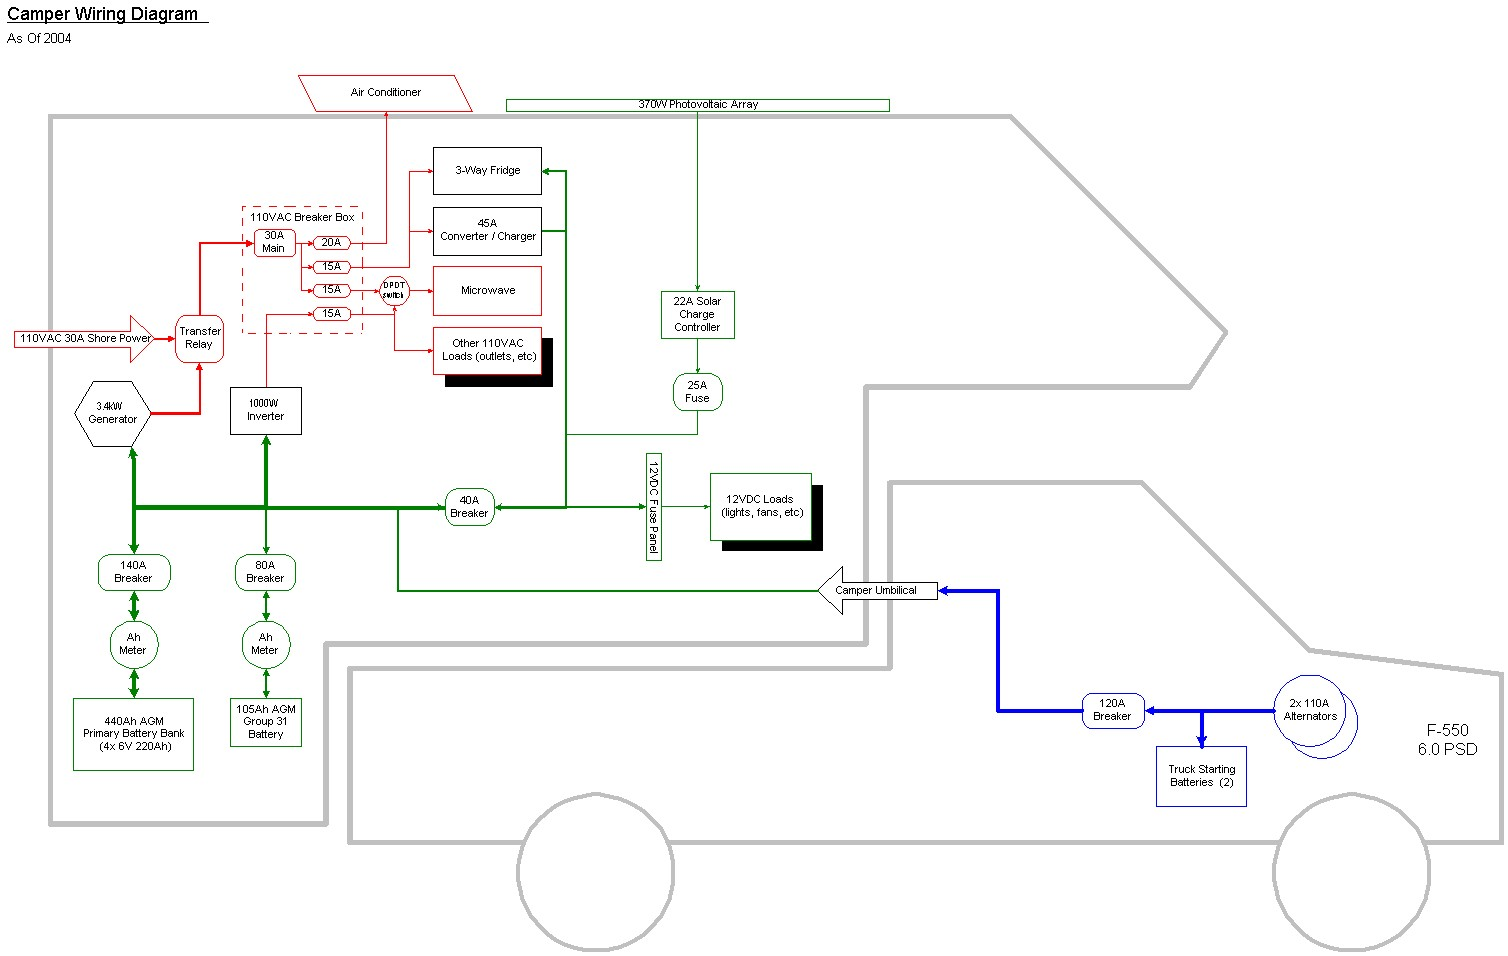 Wiring Diagram For Lance Camper